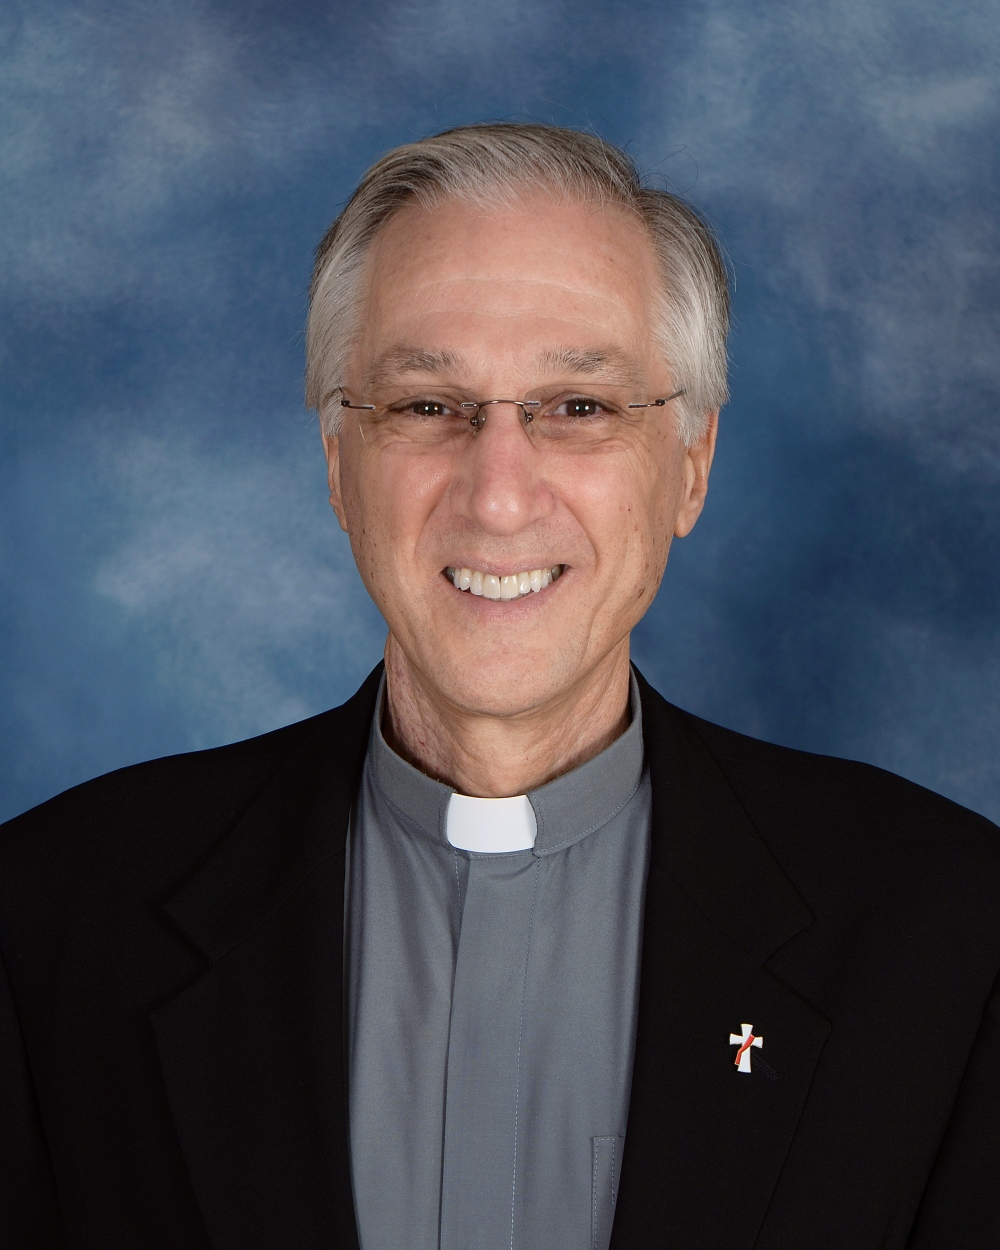 Deacon Don Battista : Deacon